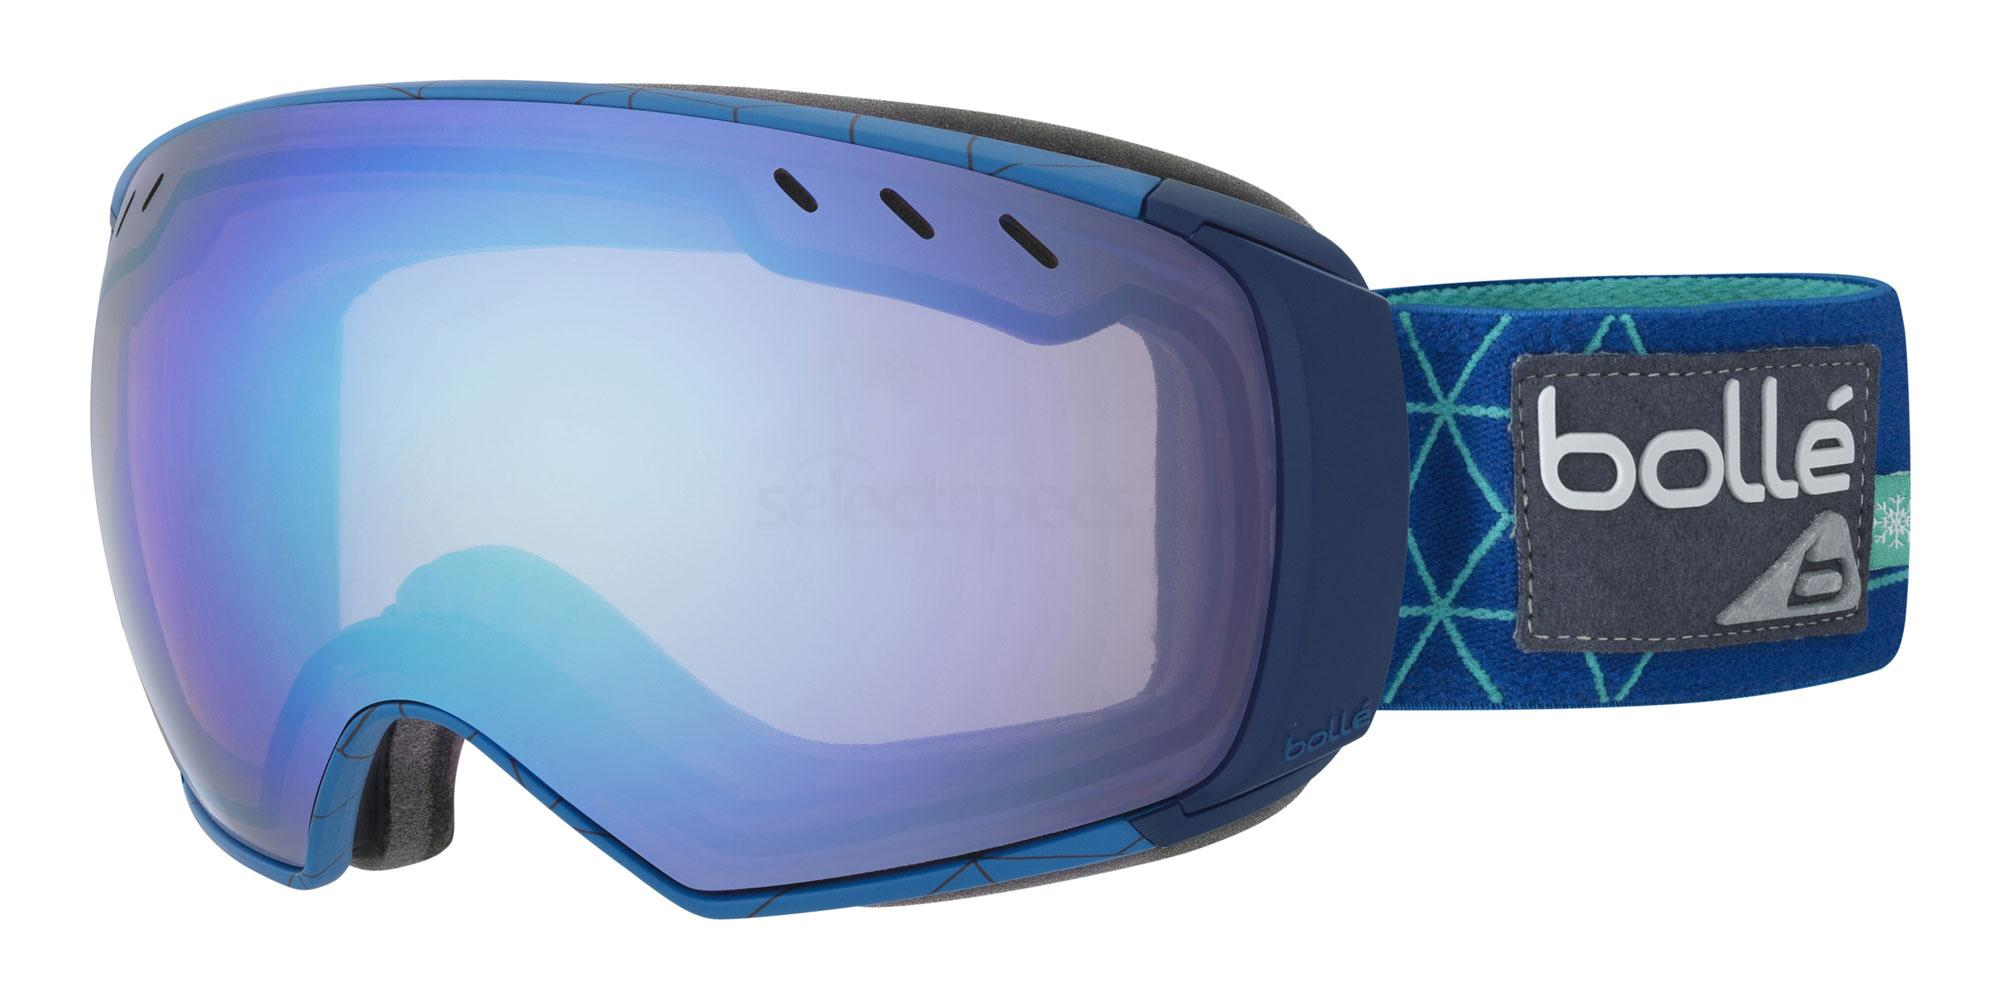 bolle virtuose ski goggles in blue